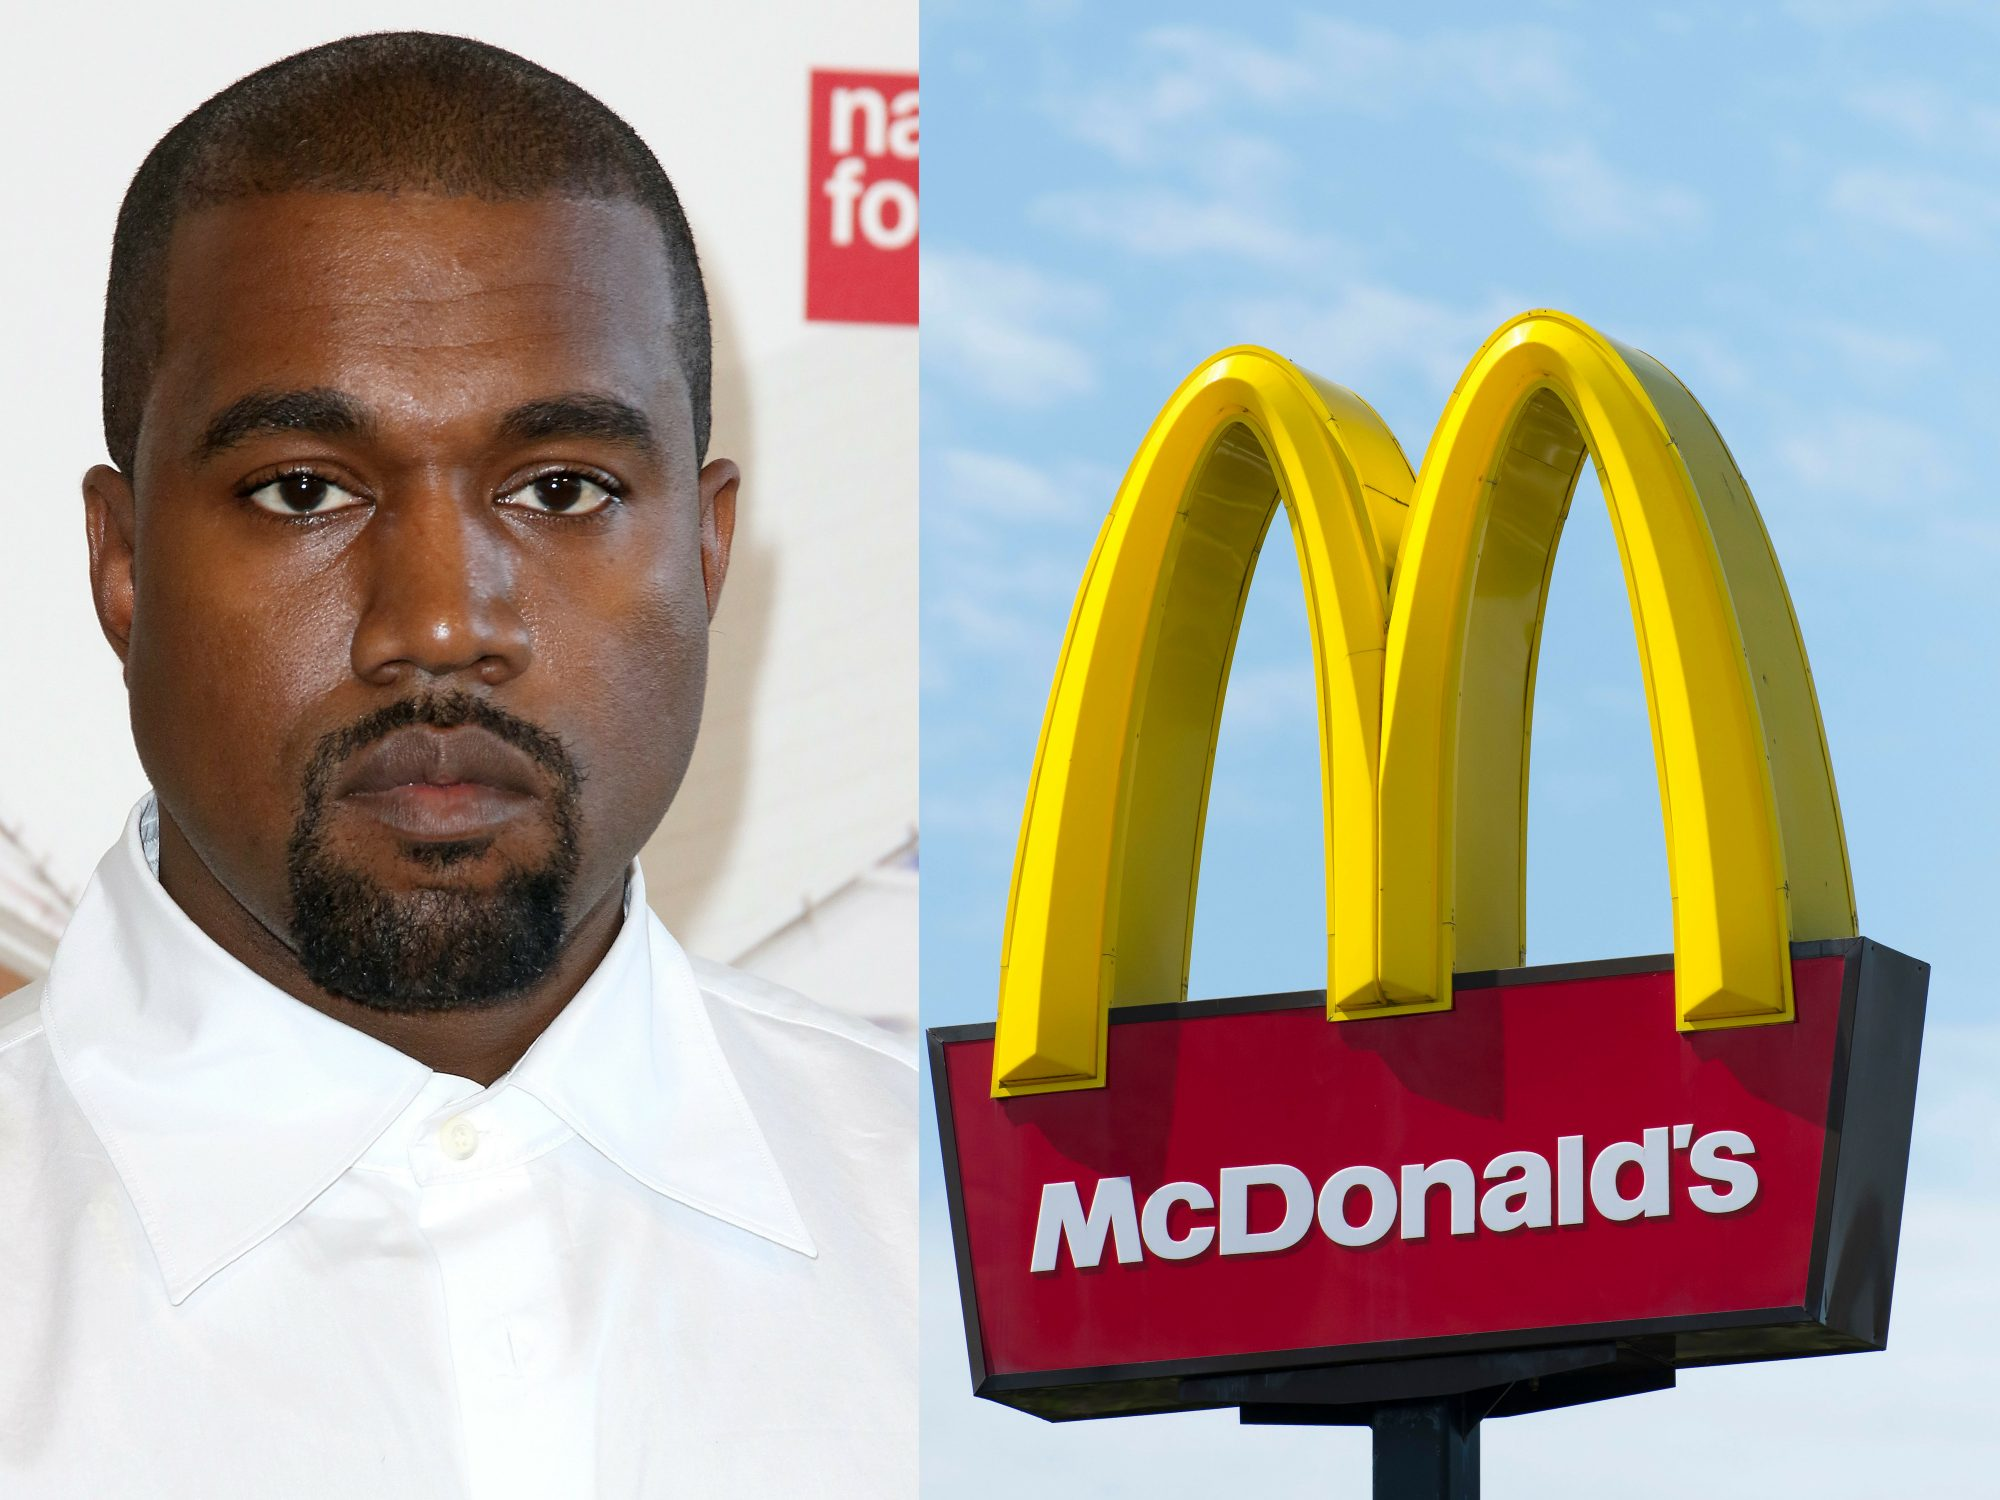 Burger King is Feuding with McDonald's and ... Kanye West?